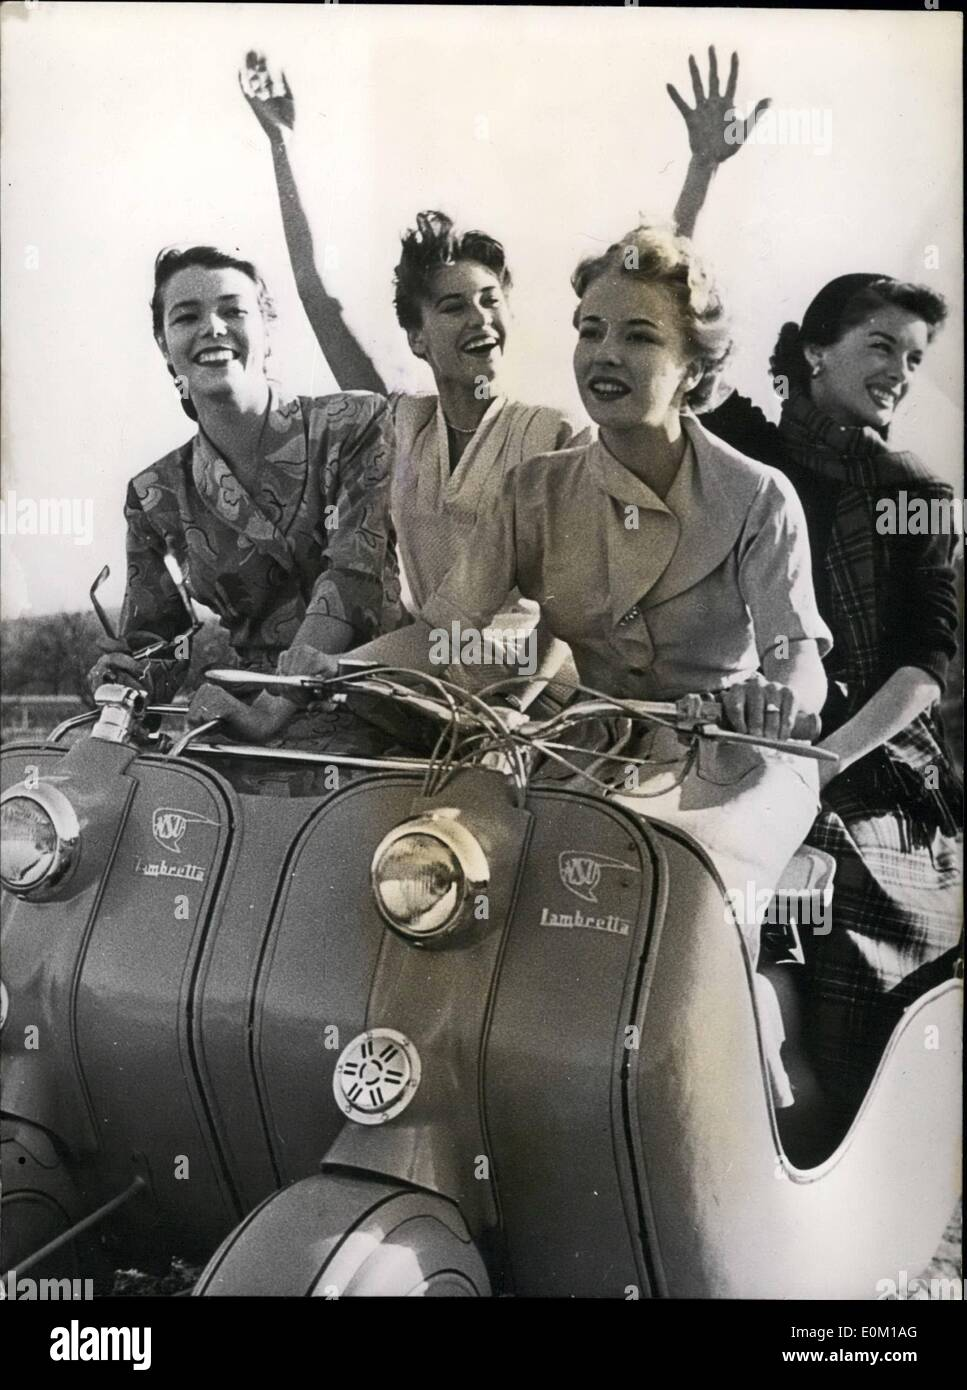 Mar. 03, 1953 - the couple-Lambretta-skooter is coming!: There were many attempts during the last years to bring Stock Photo